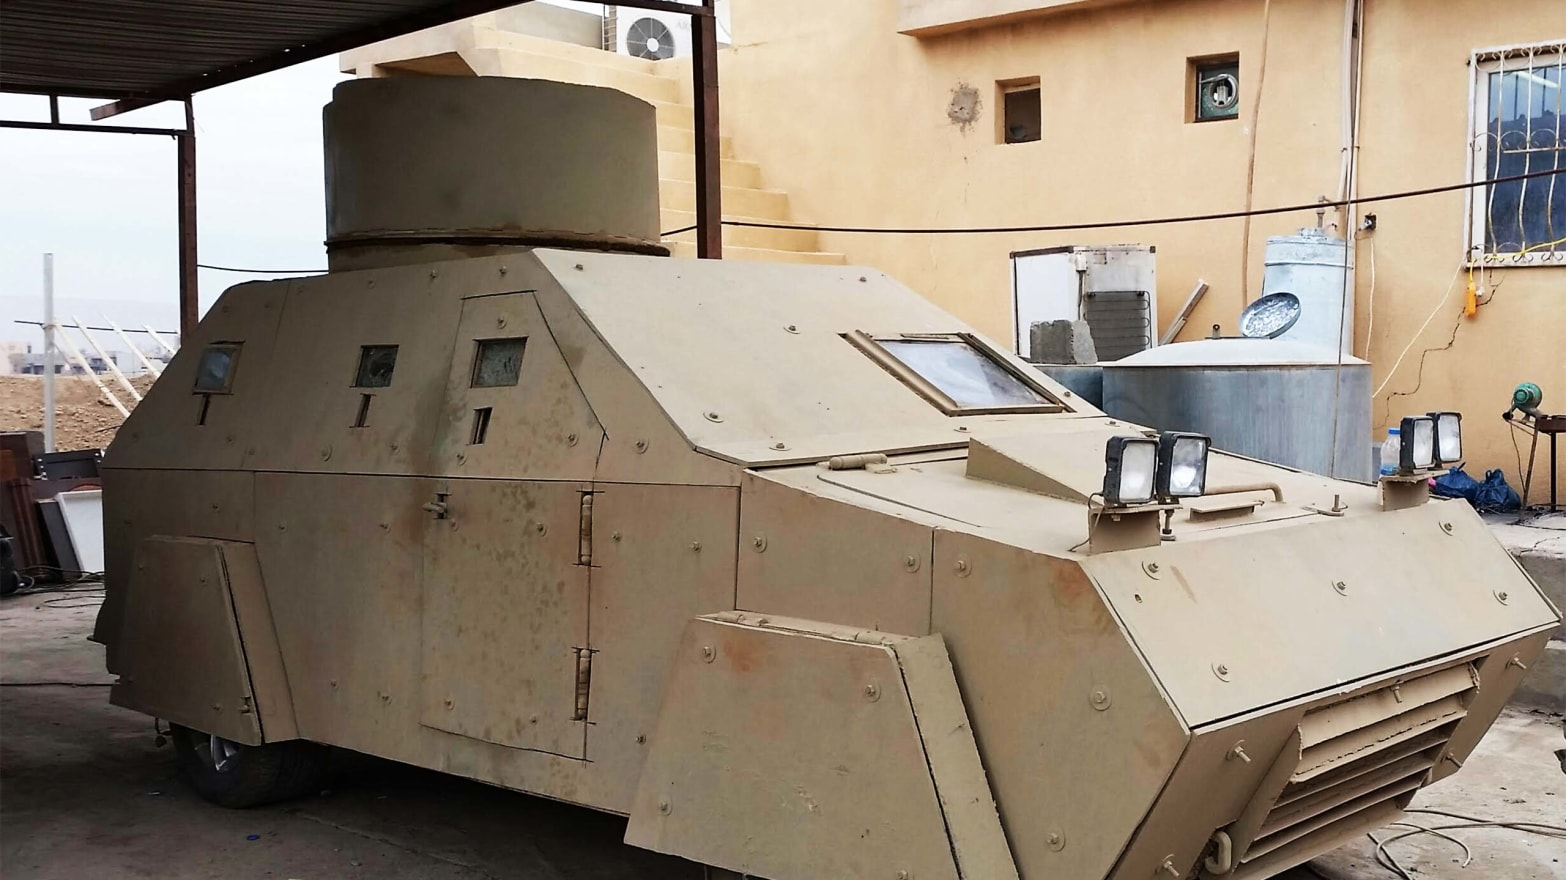 Monster Machines: ISIS's Armored War Jeeps Are Professional Grade